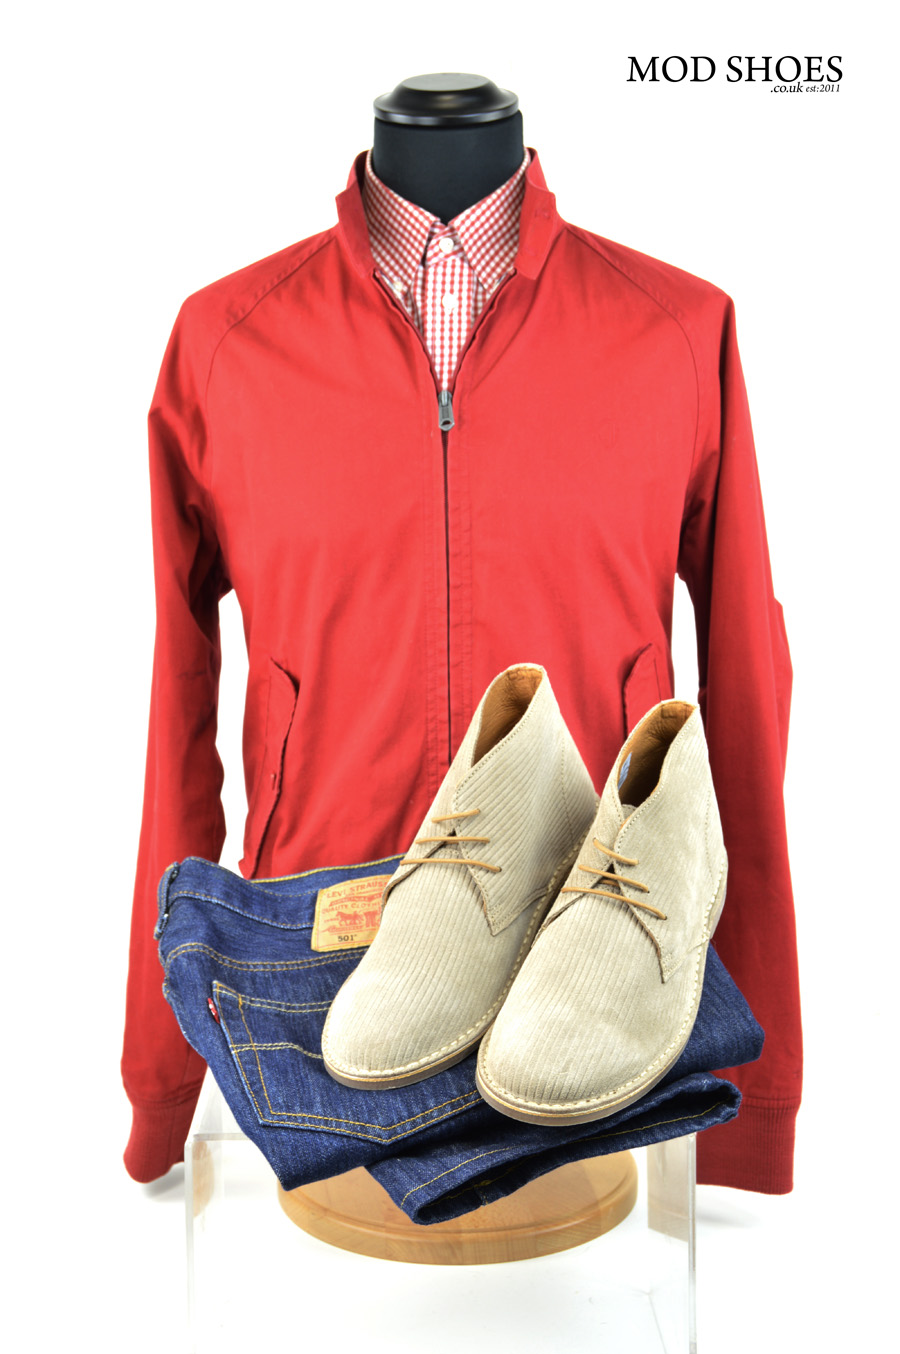 modshoes deset boots with harrington in red